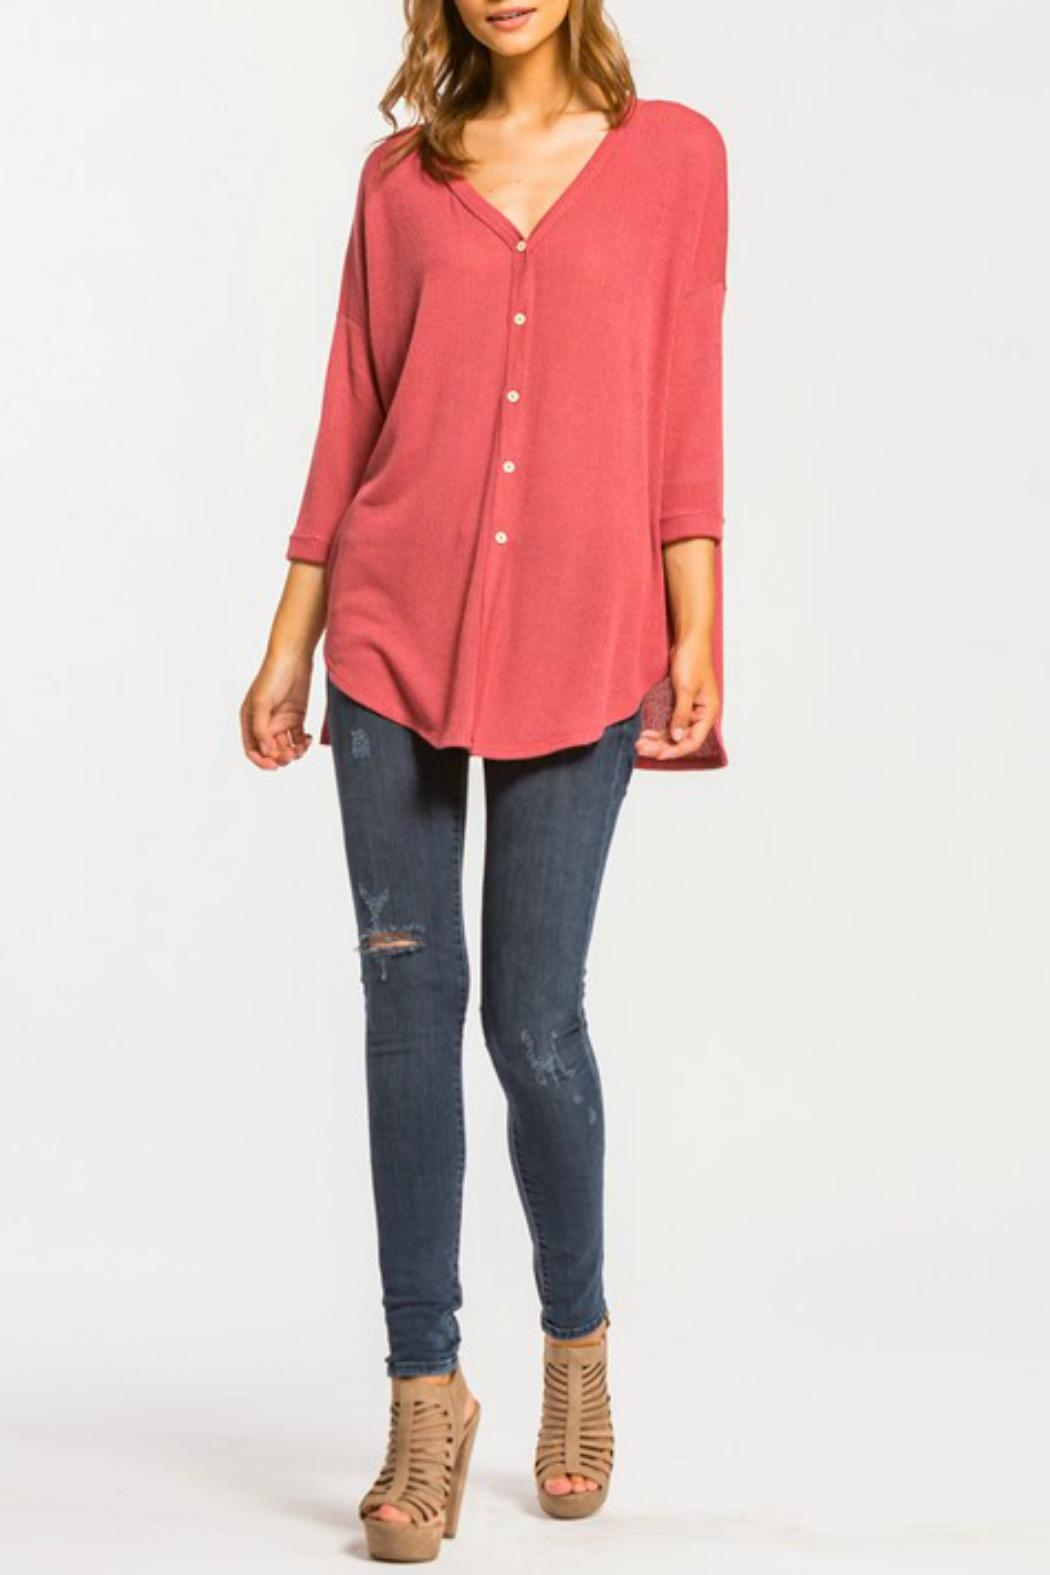 Cherish Button Down Knit Top - Side Cropped Image